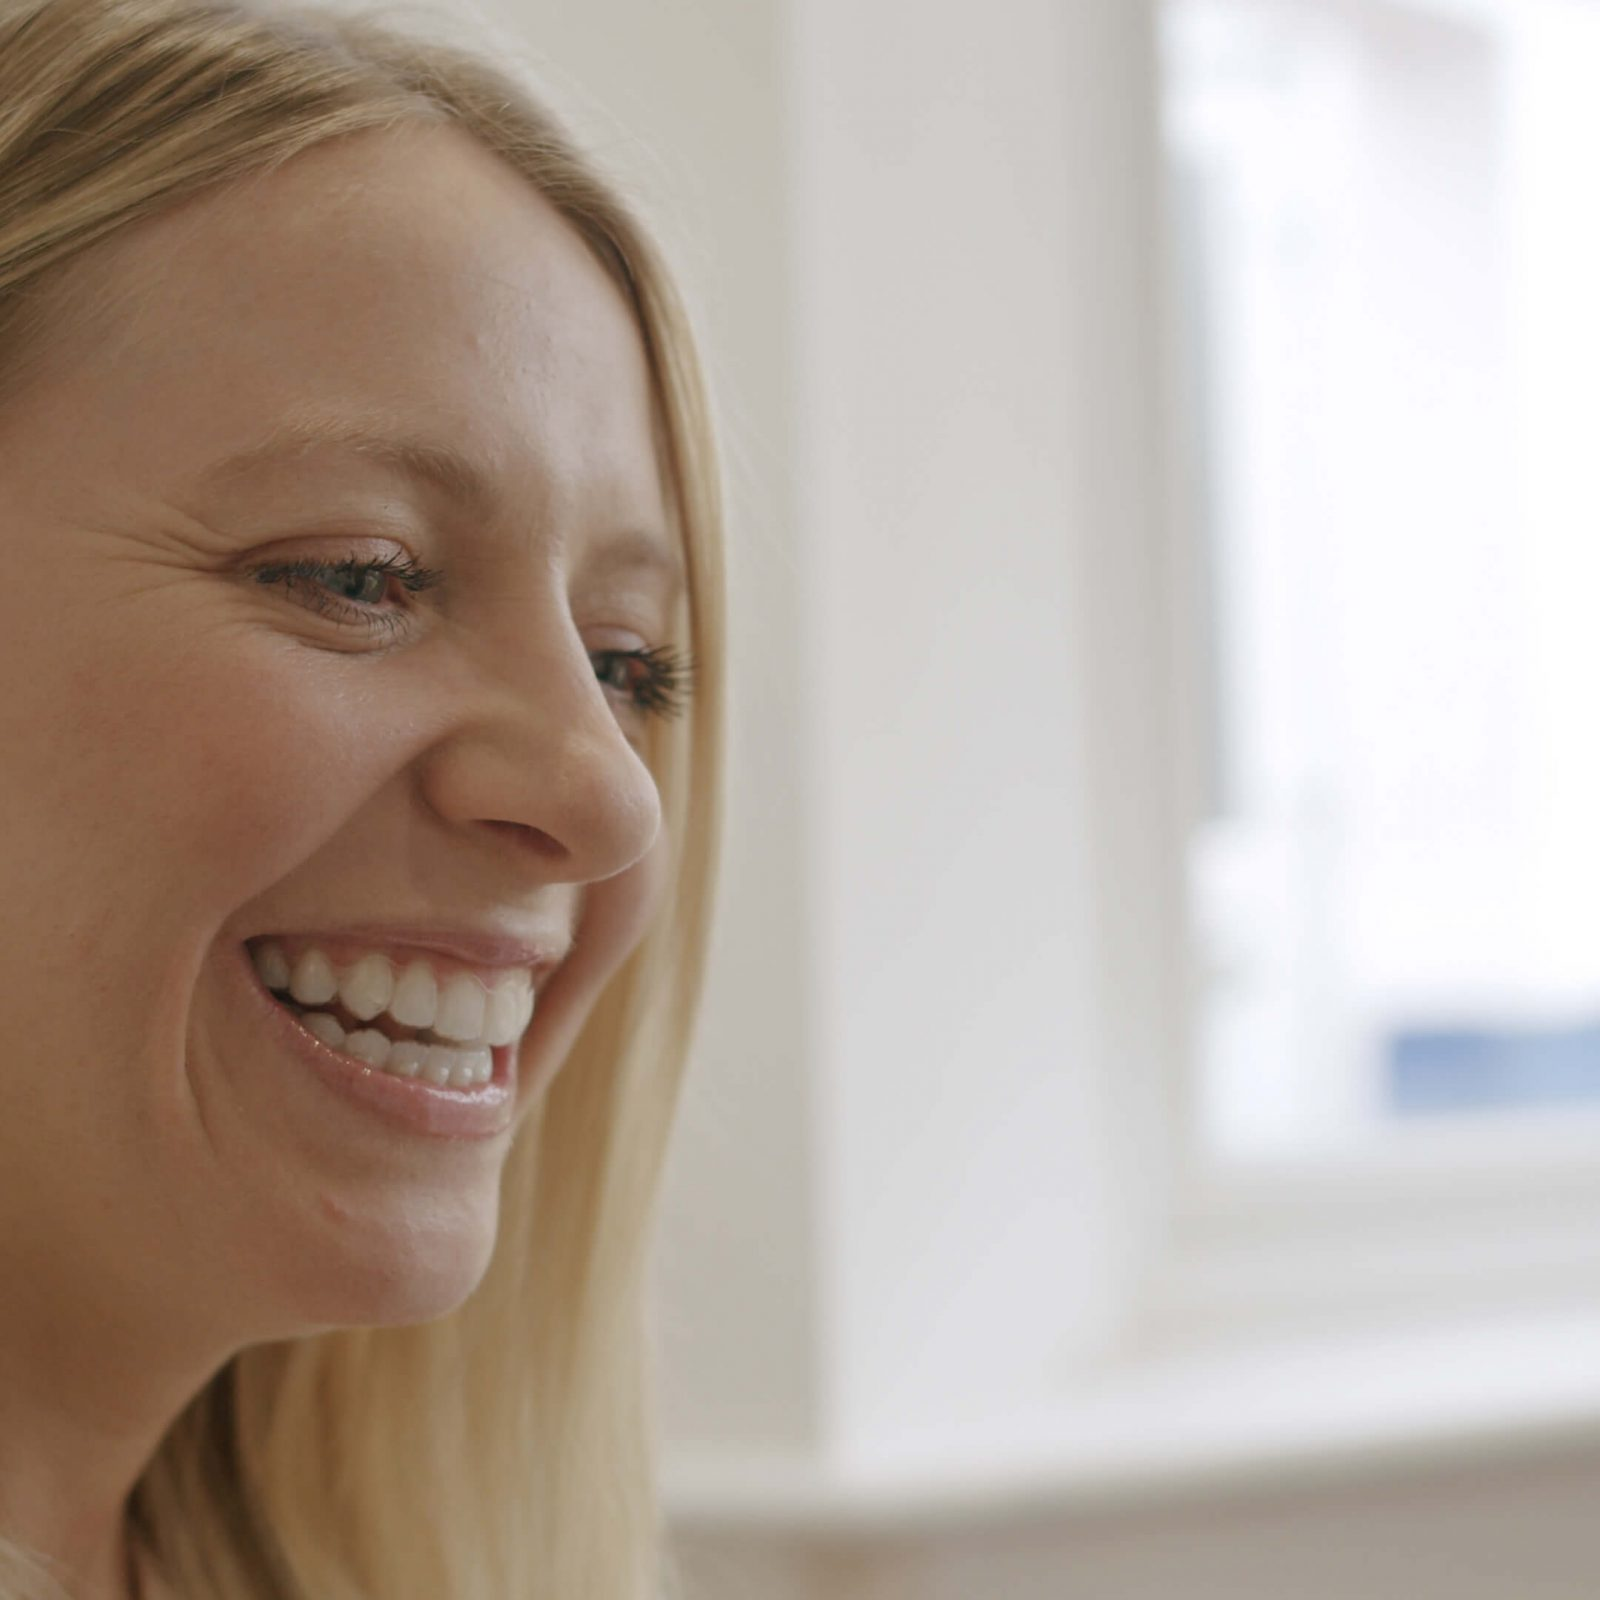 Photo of Rachel Smiling with Invisalign in